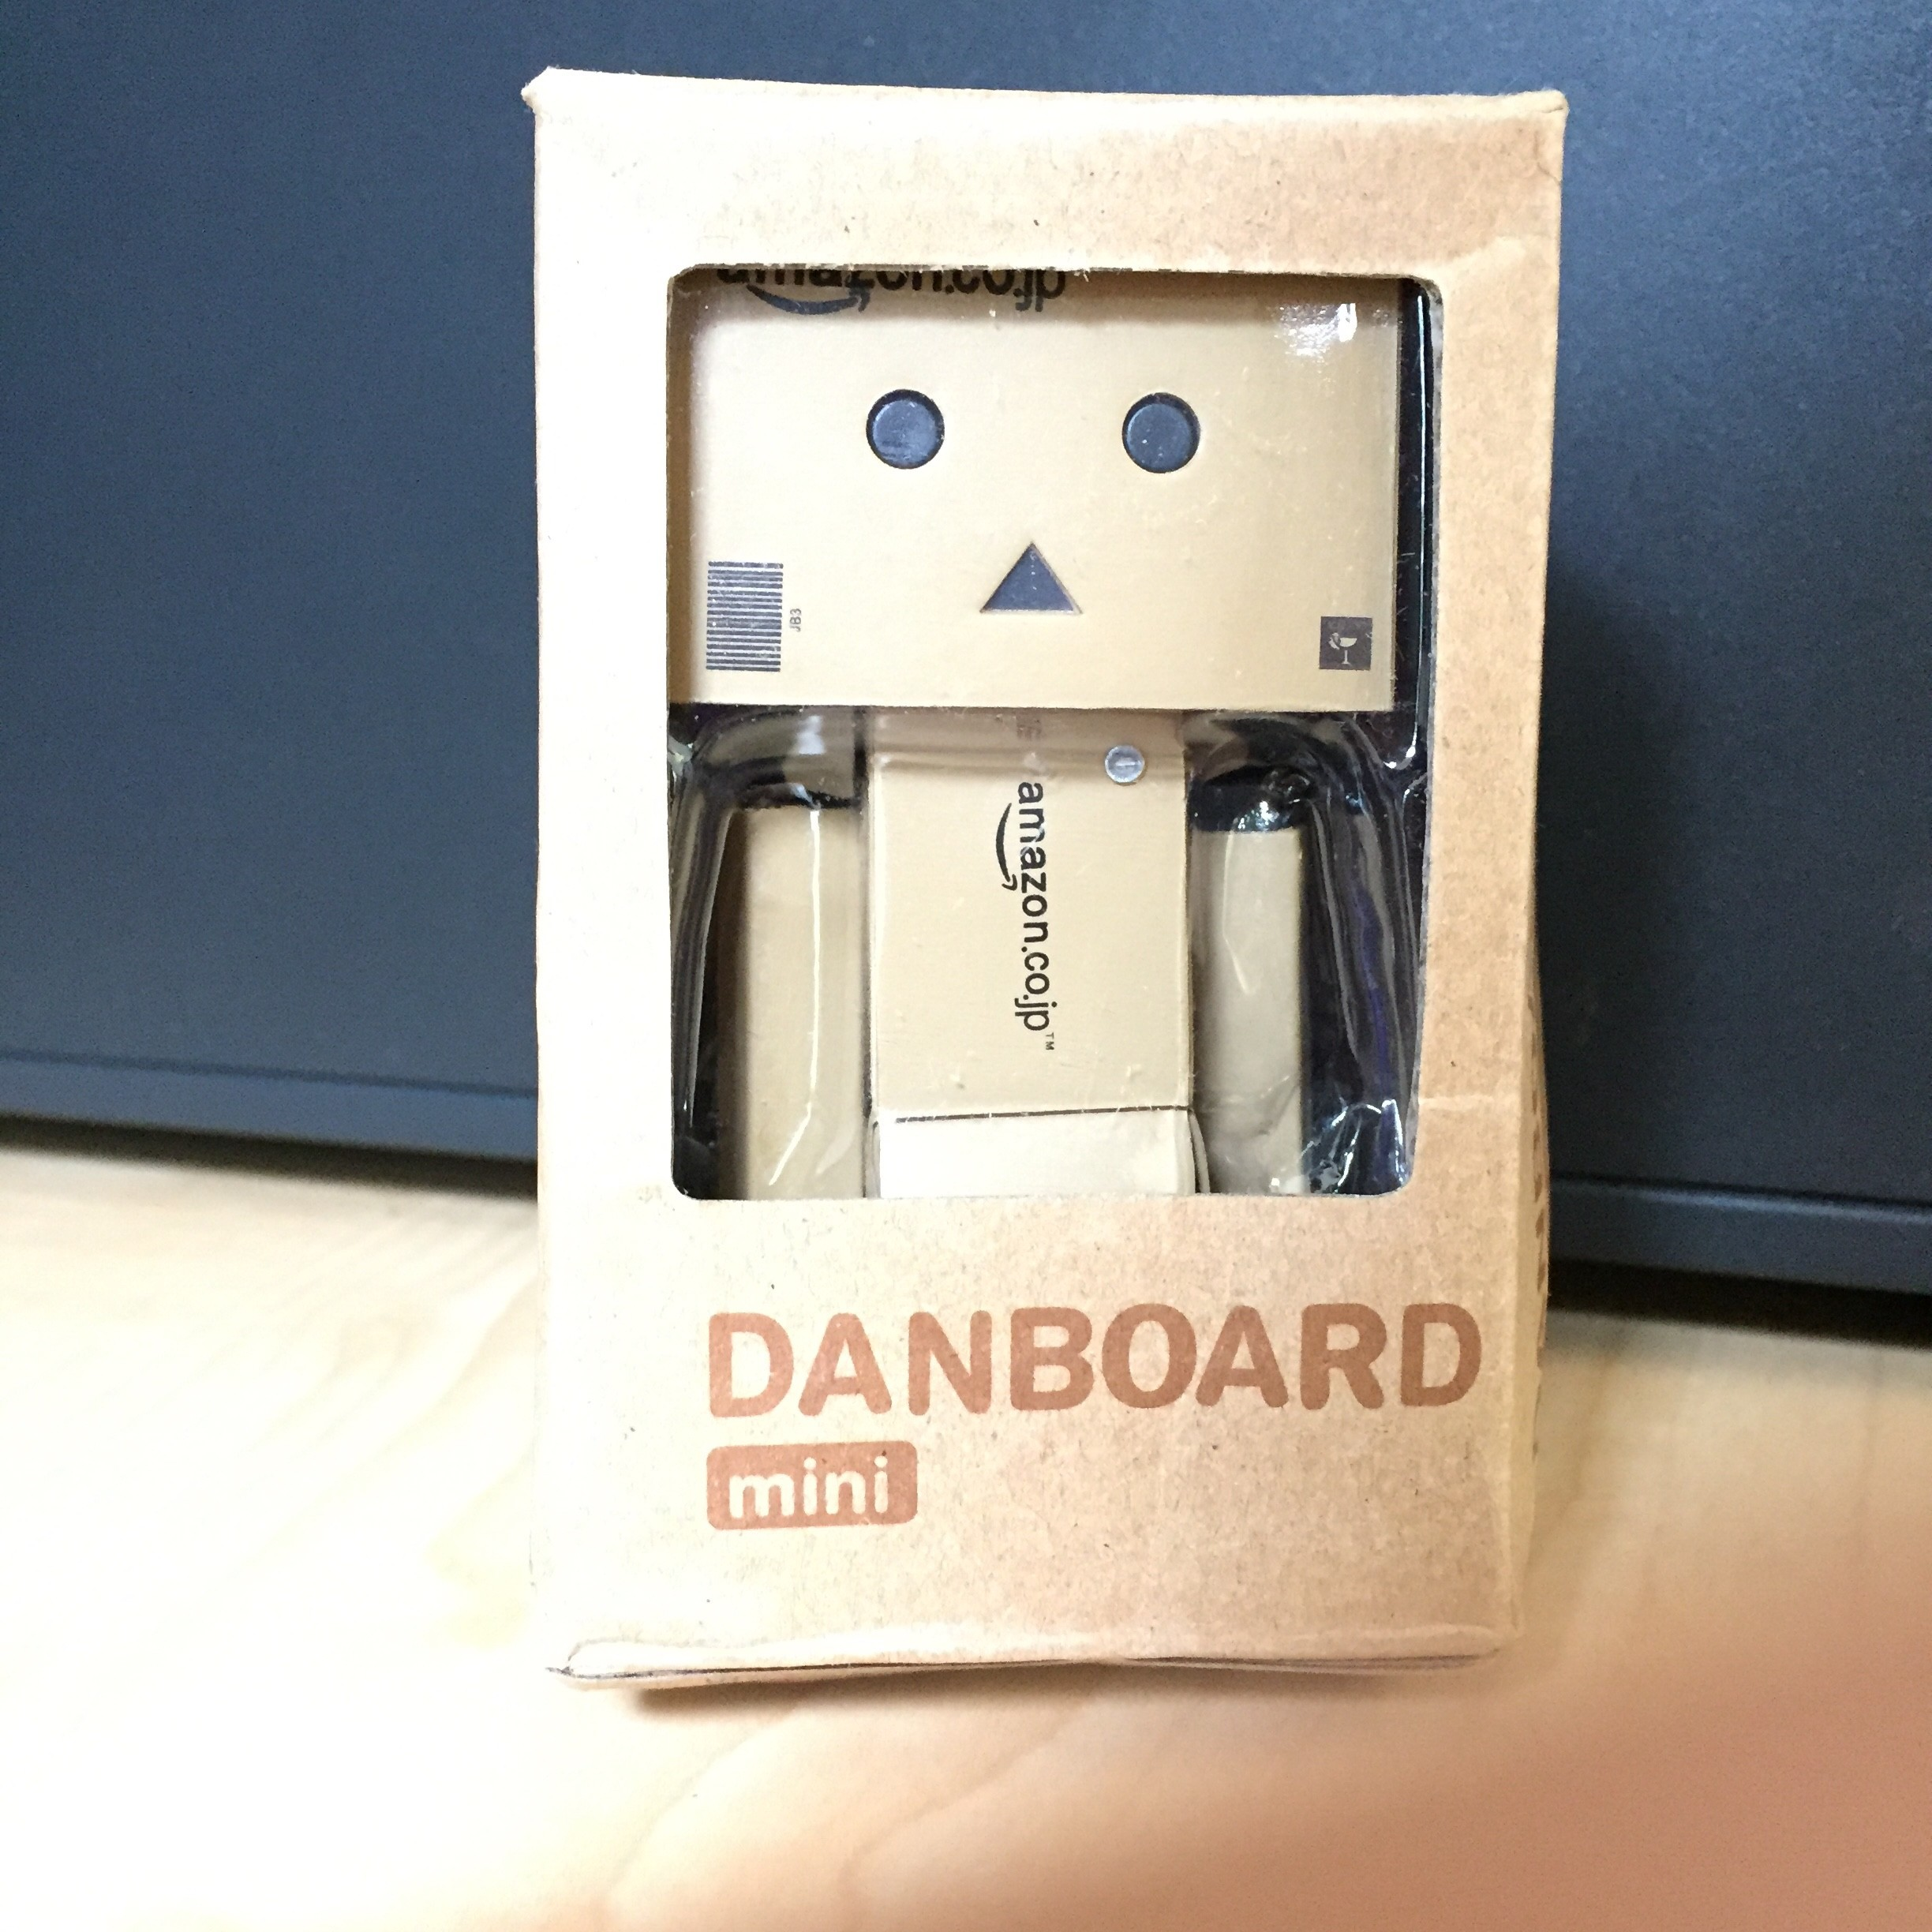 Danboard Amazon